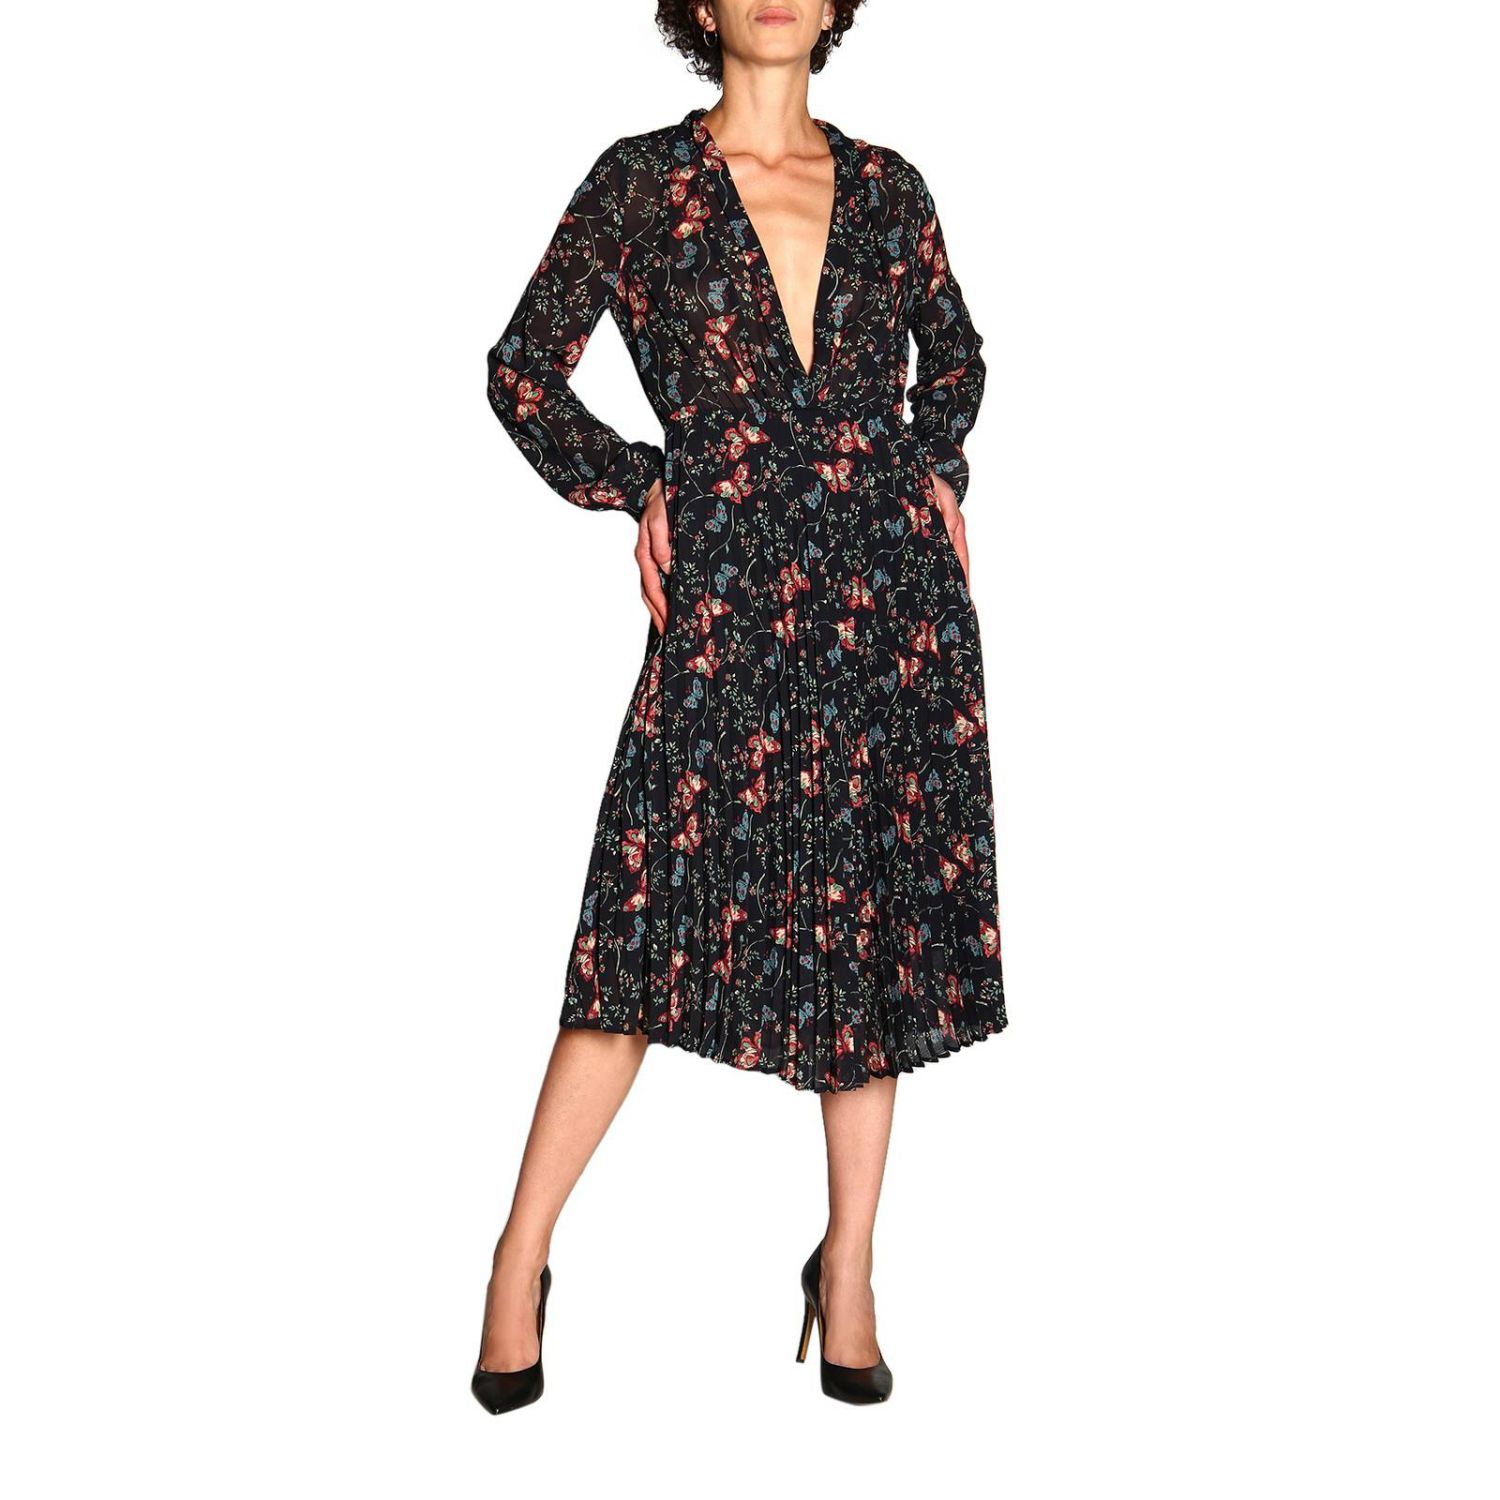 Robes Semicouture: Robes femme Semicouture noir 2